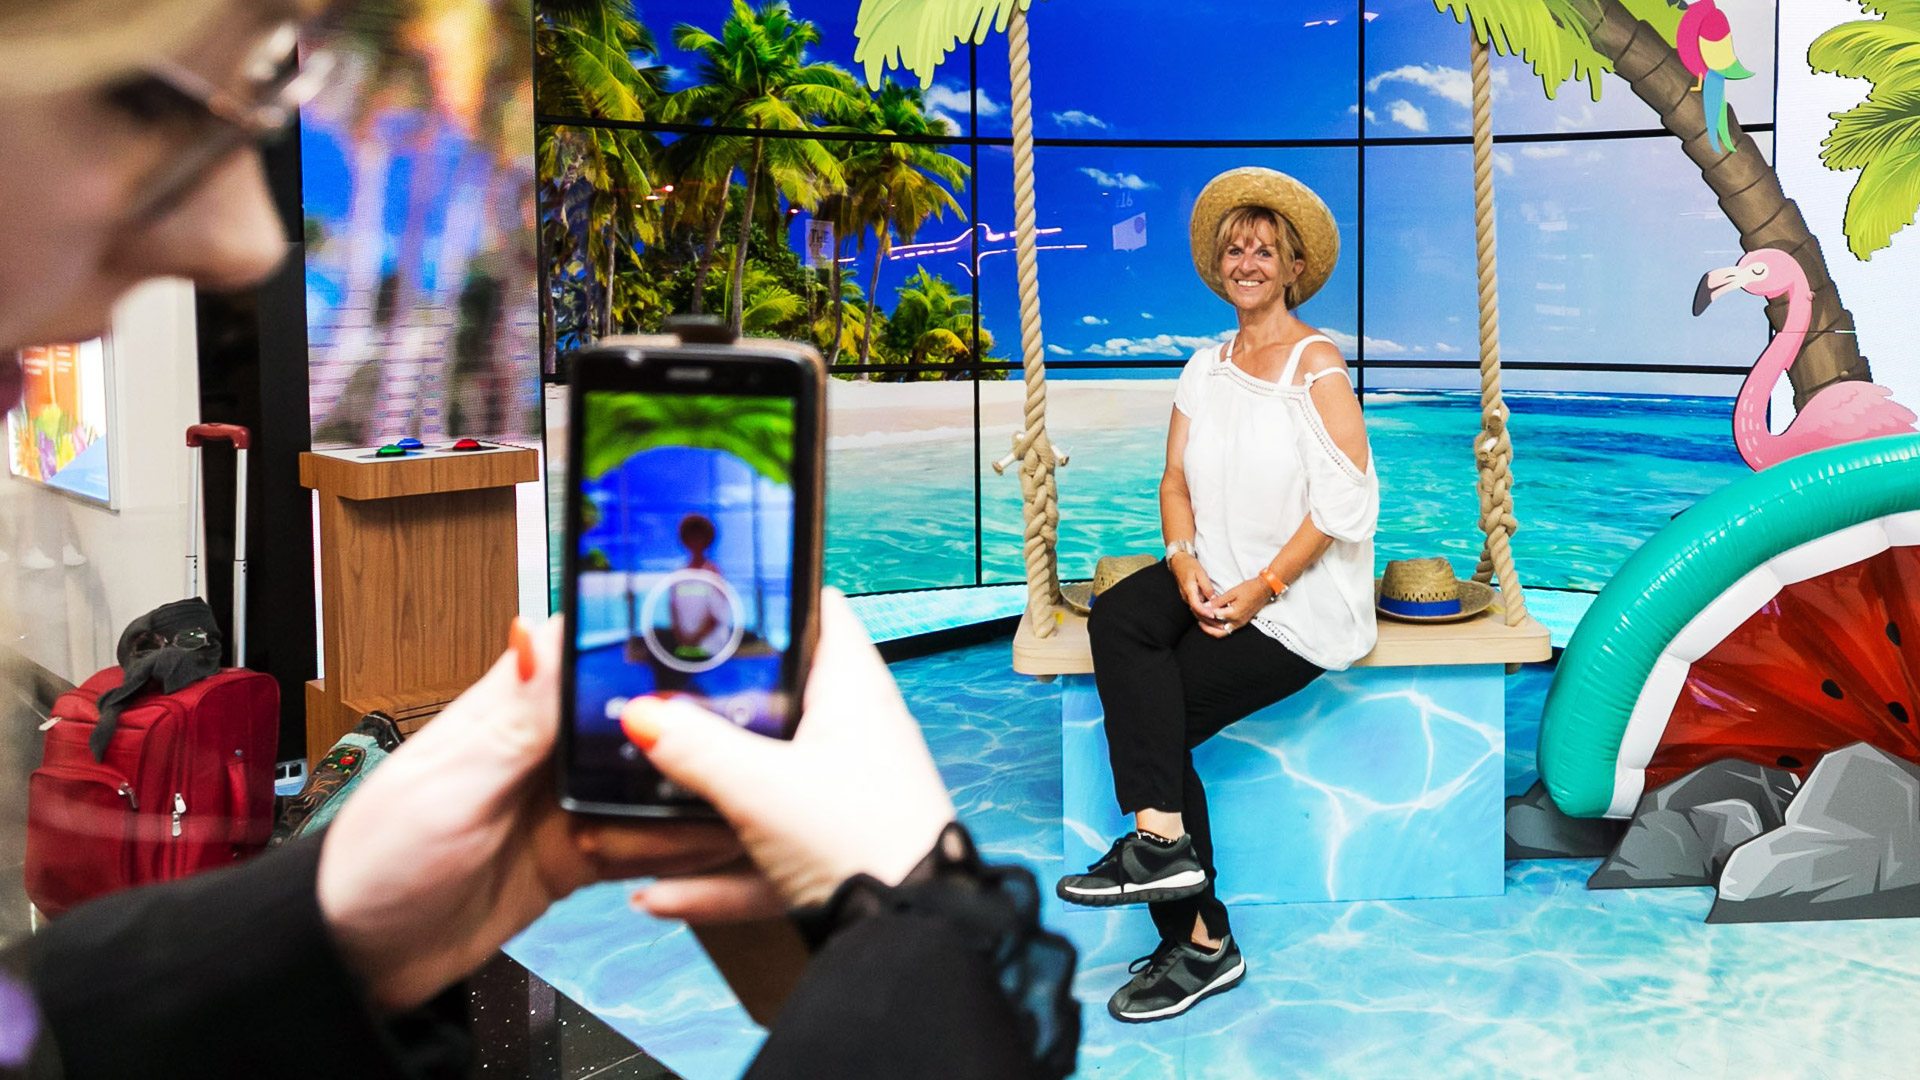 The Aloha Summer experience allowed customers to take a themed holiday selfie. At the touch of a button, customers selected from a range of digital backgrounds with accompanying soundscape, ready to pose for their selfie.    Blynk designed and implemented all the interactive elements, digital content, and sound scaping. Aloha was a great example of utilising and enhancing existing digital infrastructure to deliver an unforgettable experience.